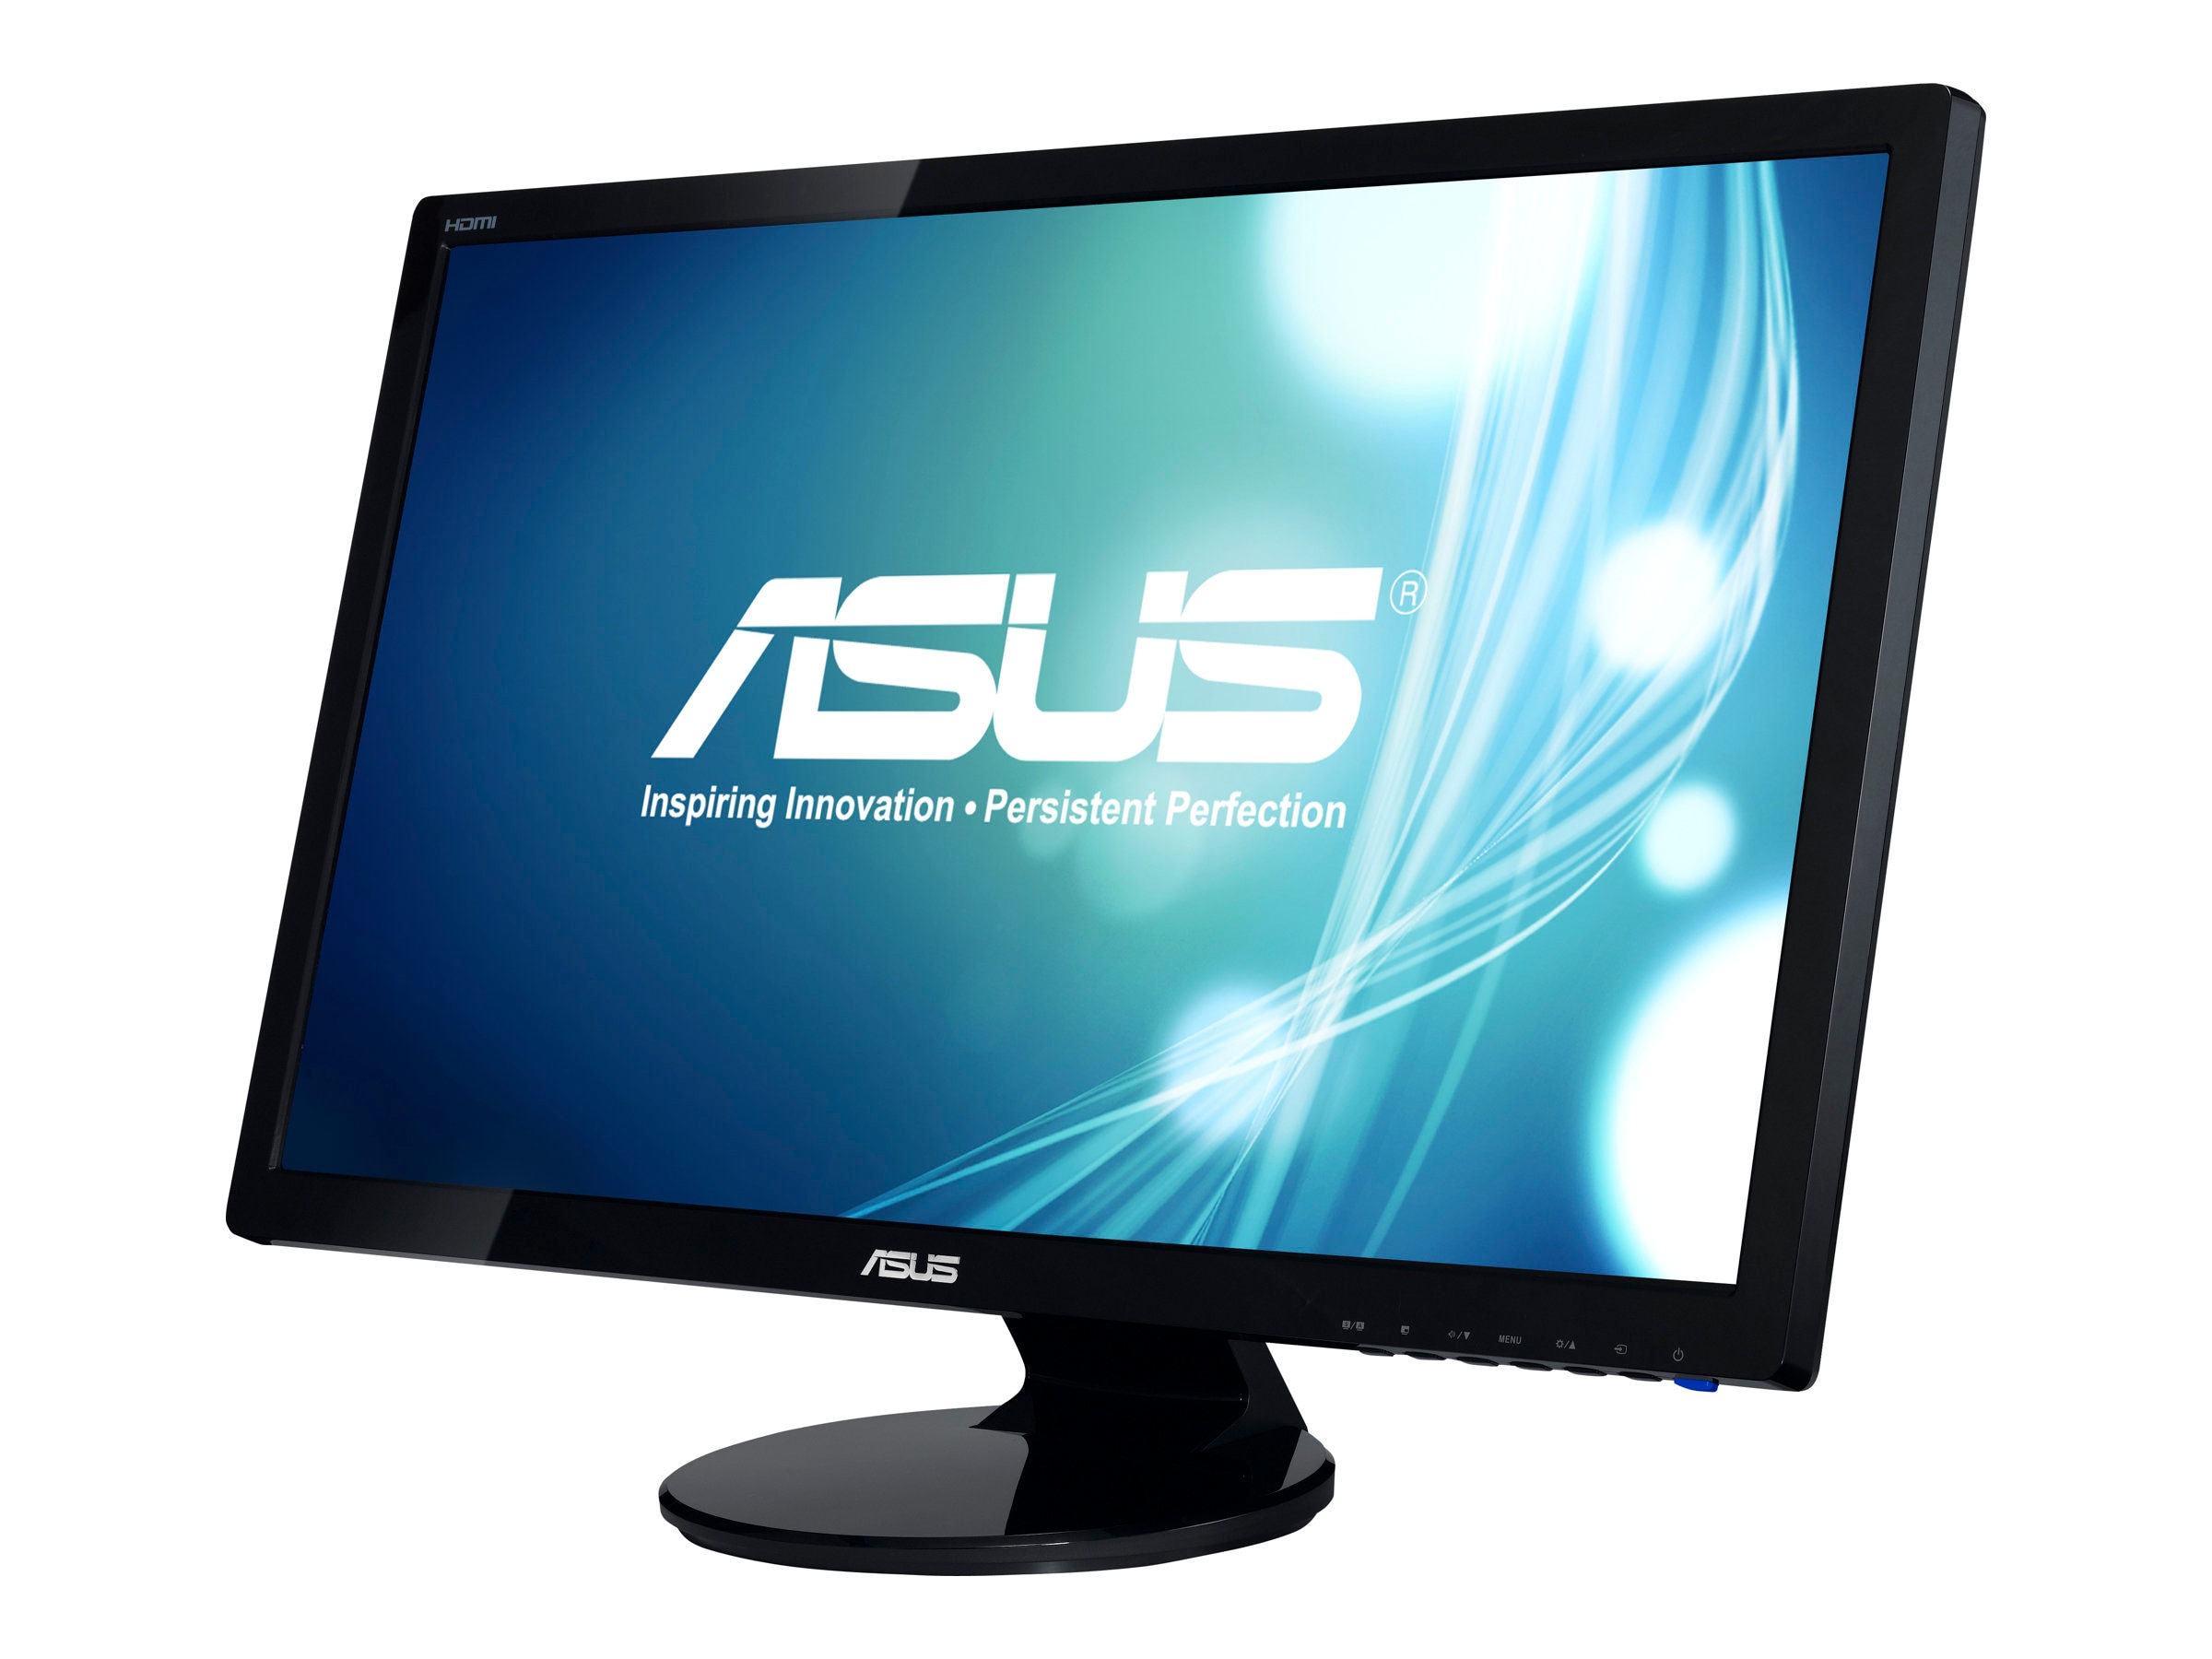 Asus 27 VE278Q Full HD LED-LCD Monitor with Speakers, Black, VE278Q, 12019147, Monitors - LED-LCD